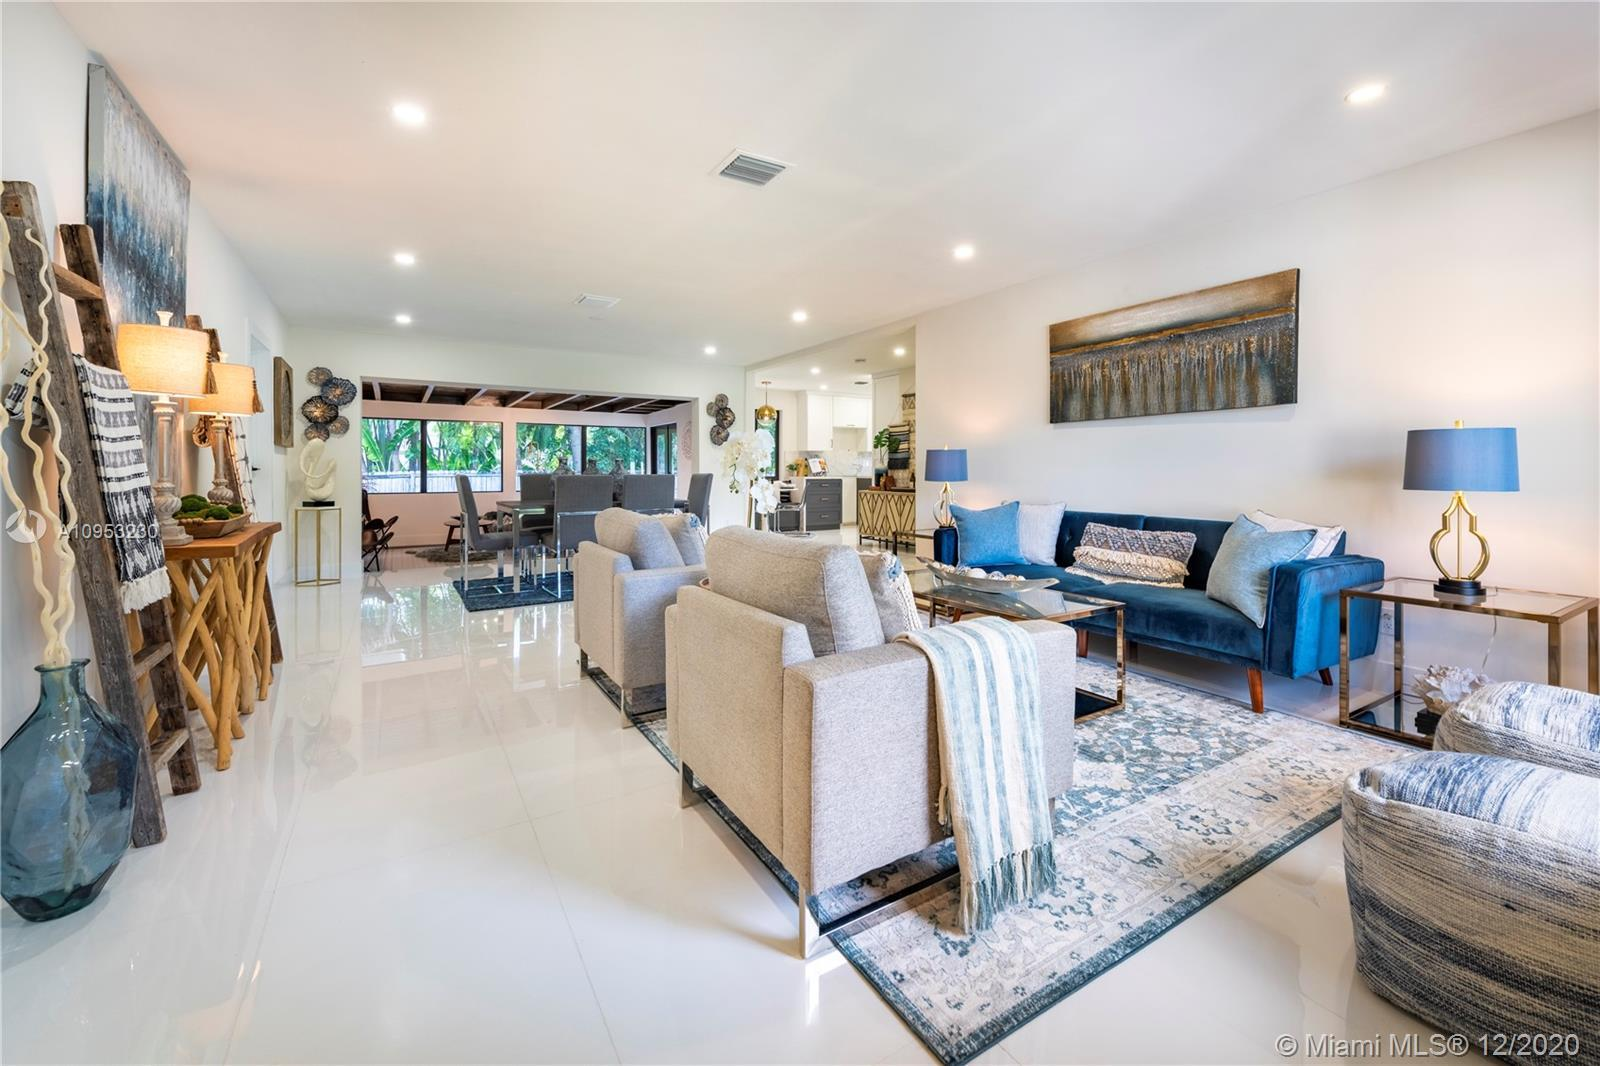 Don't miss your opportunity to own a fully renovated bungalow in Miami Shores! Impeccablyupdated, t